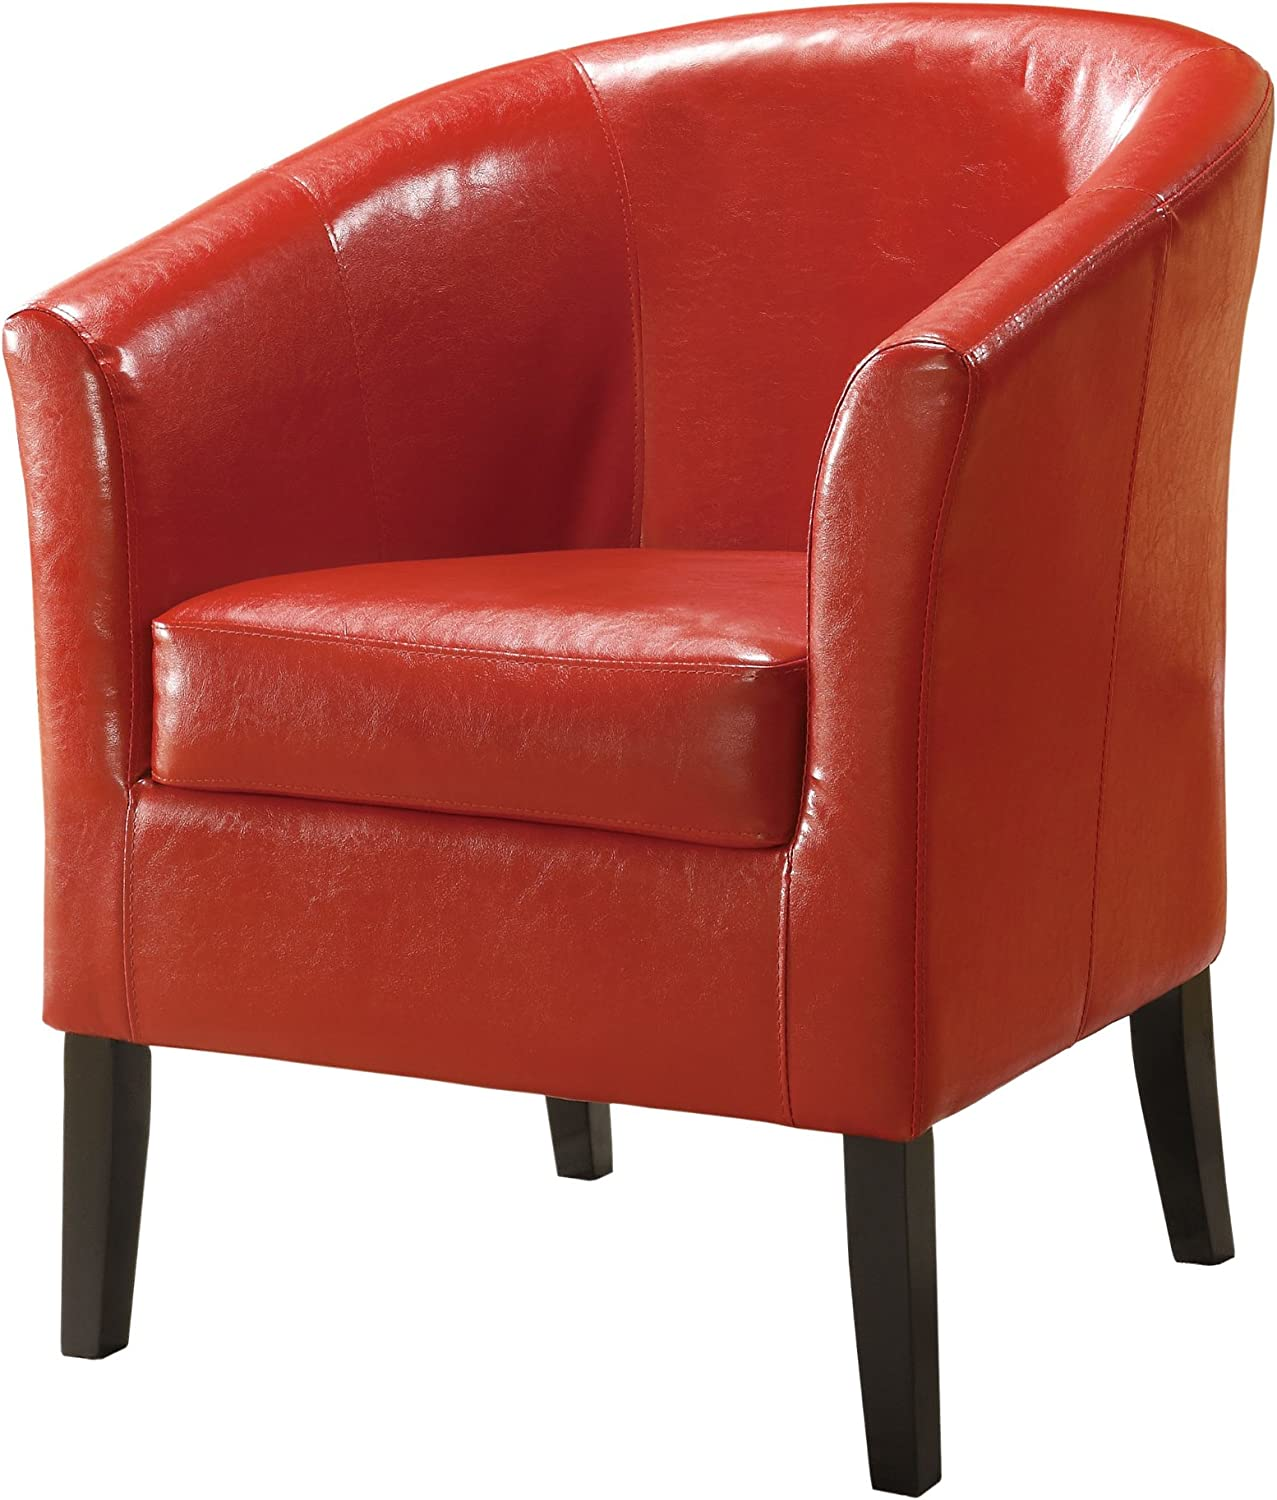 Linon Home Decor Simon Club Chair, Red